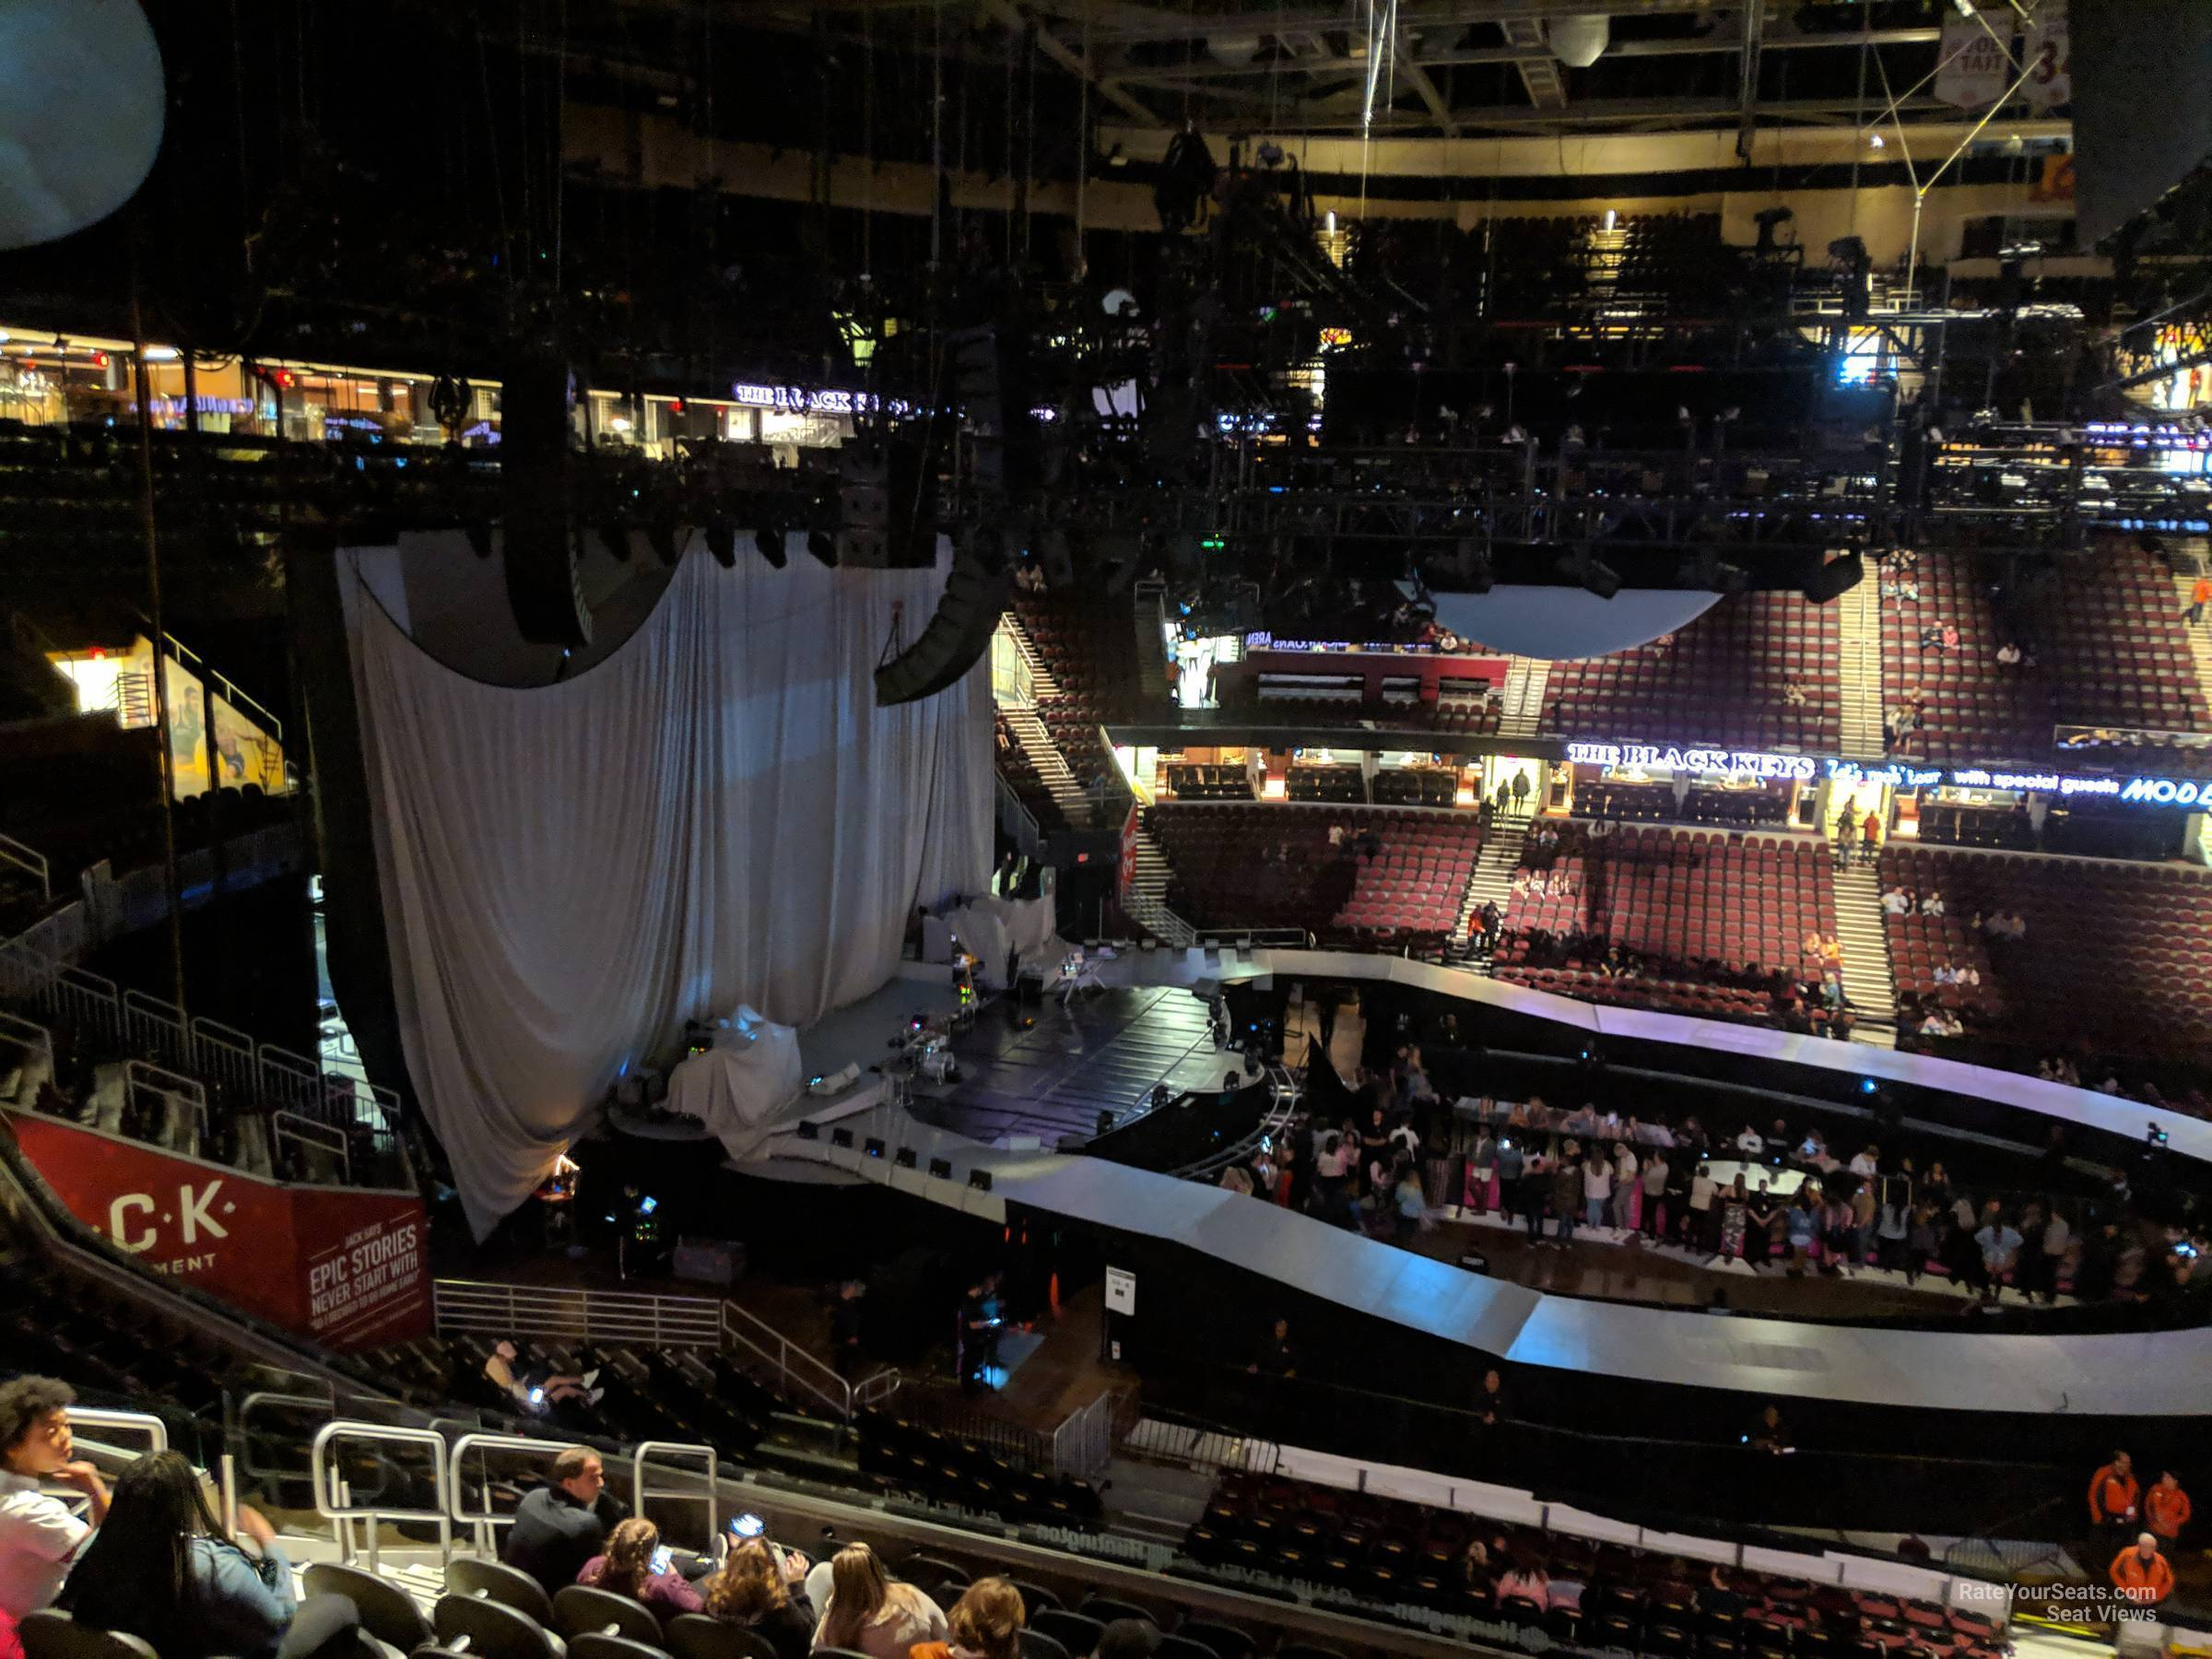 Section C109 seat view